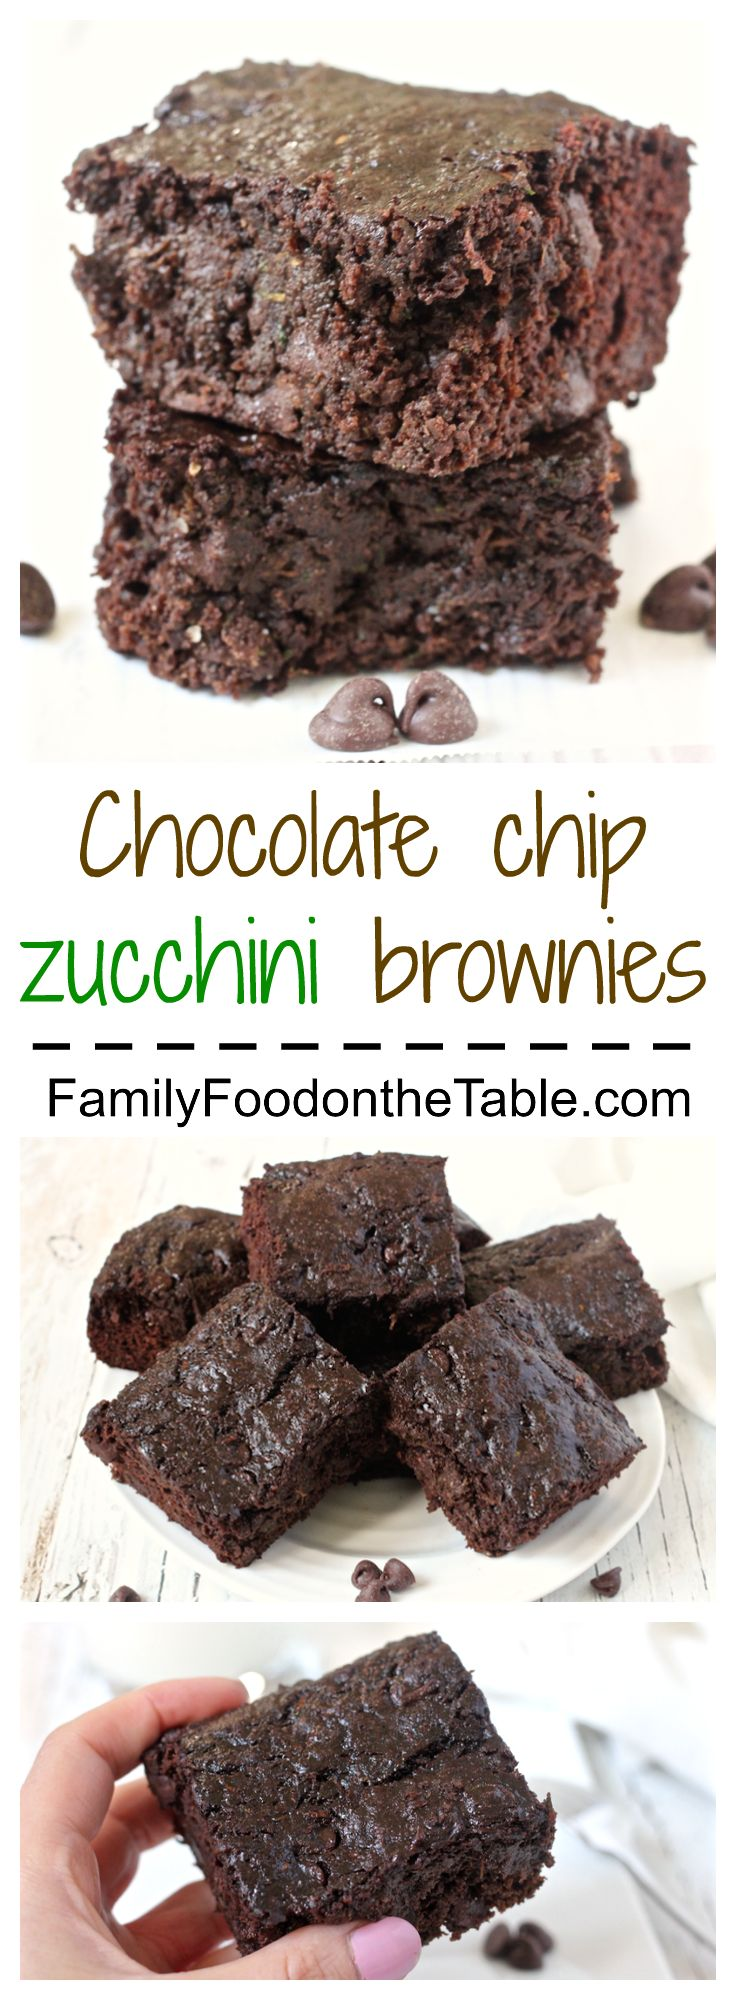 Chocolate chip zucchini brownies - decadent, delicious and secretly healthy! | FamilyFoodontheTable.com